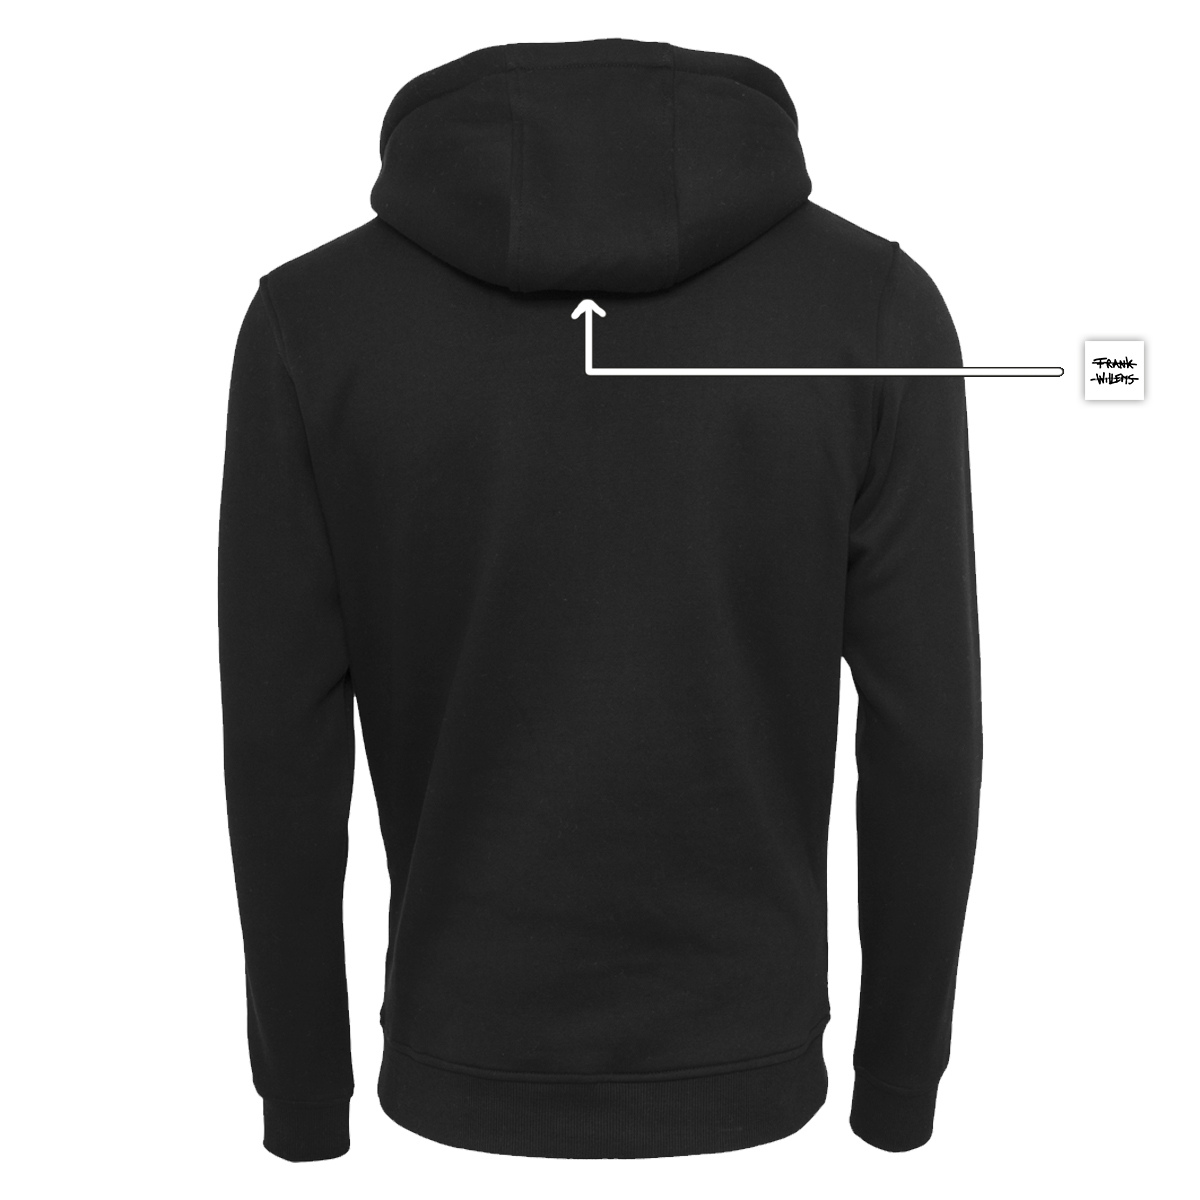 ONE AND ONE MAKES TWO - COME TOGETHER - hoodie back - Frank Willems